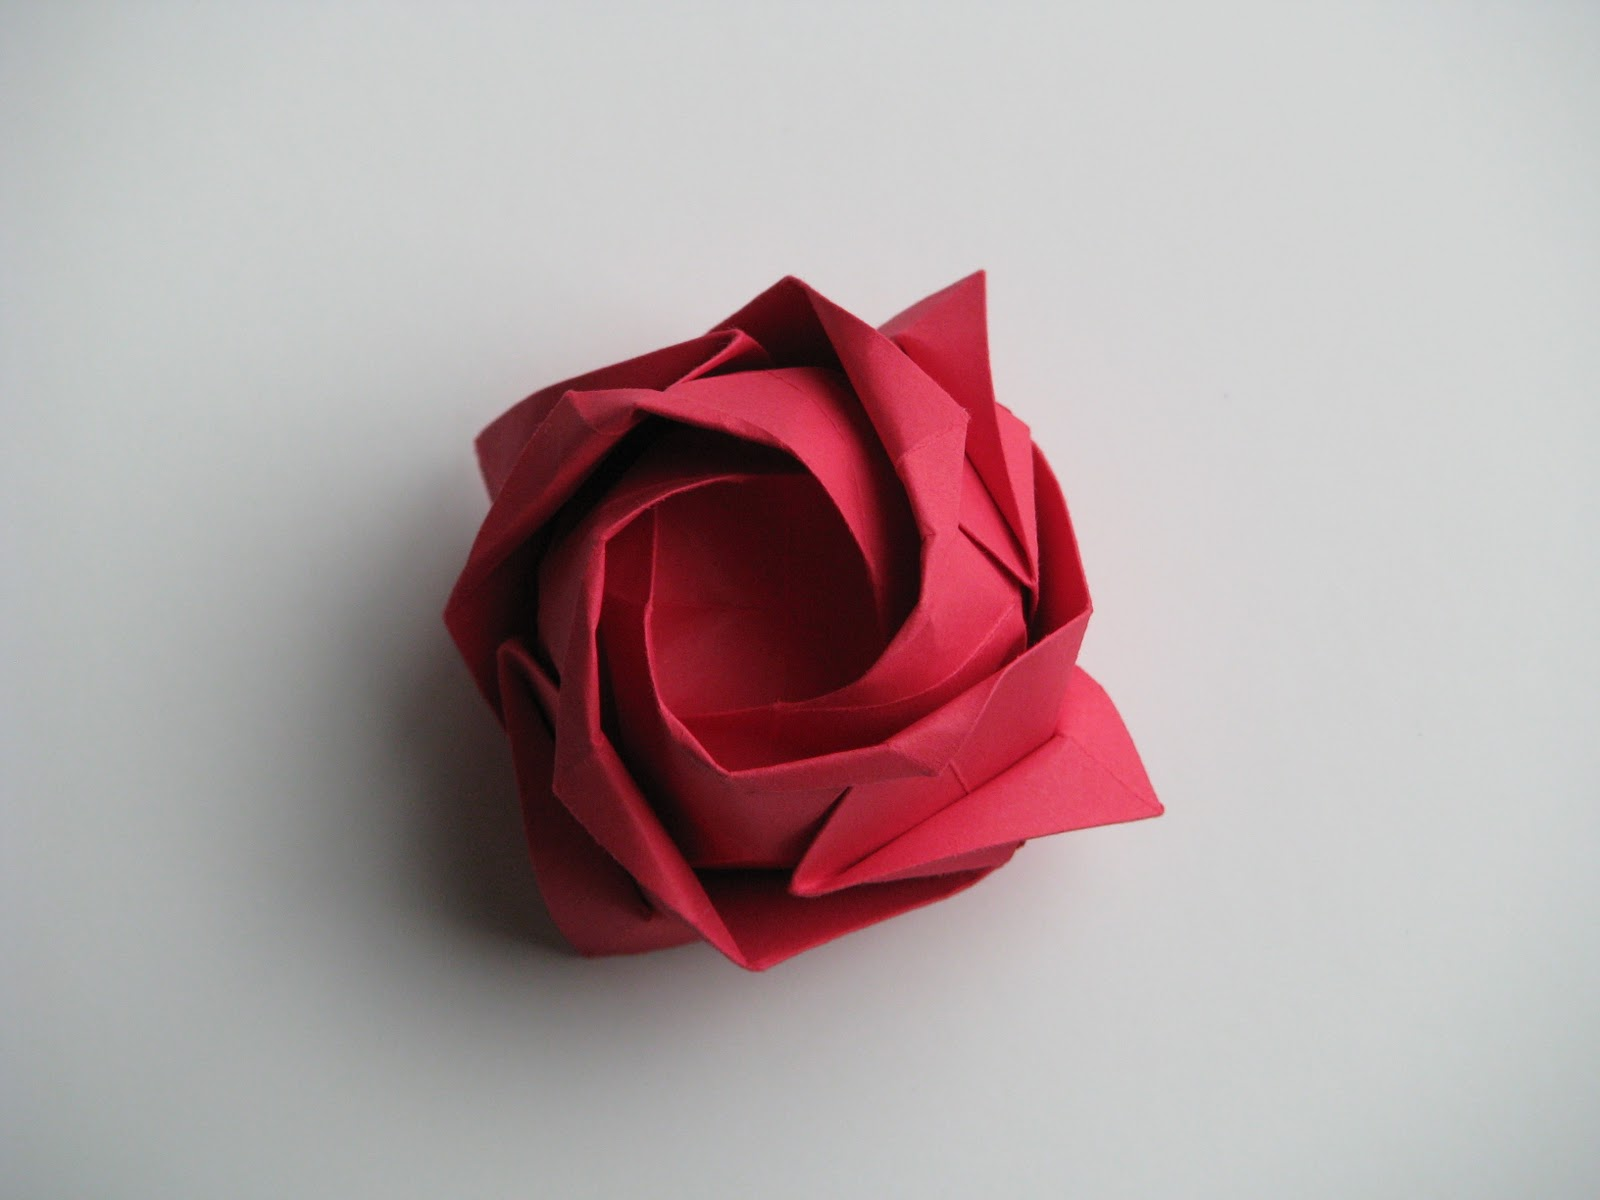 How To Make Origami Magic Rose Step By Step